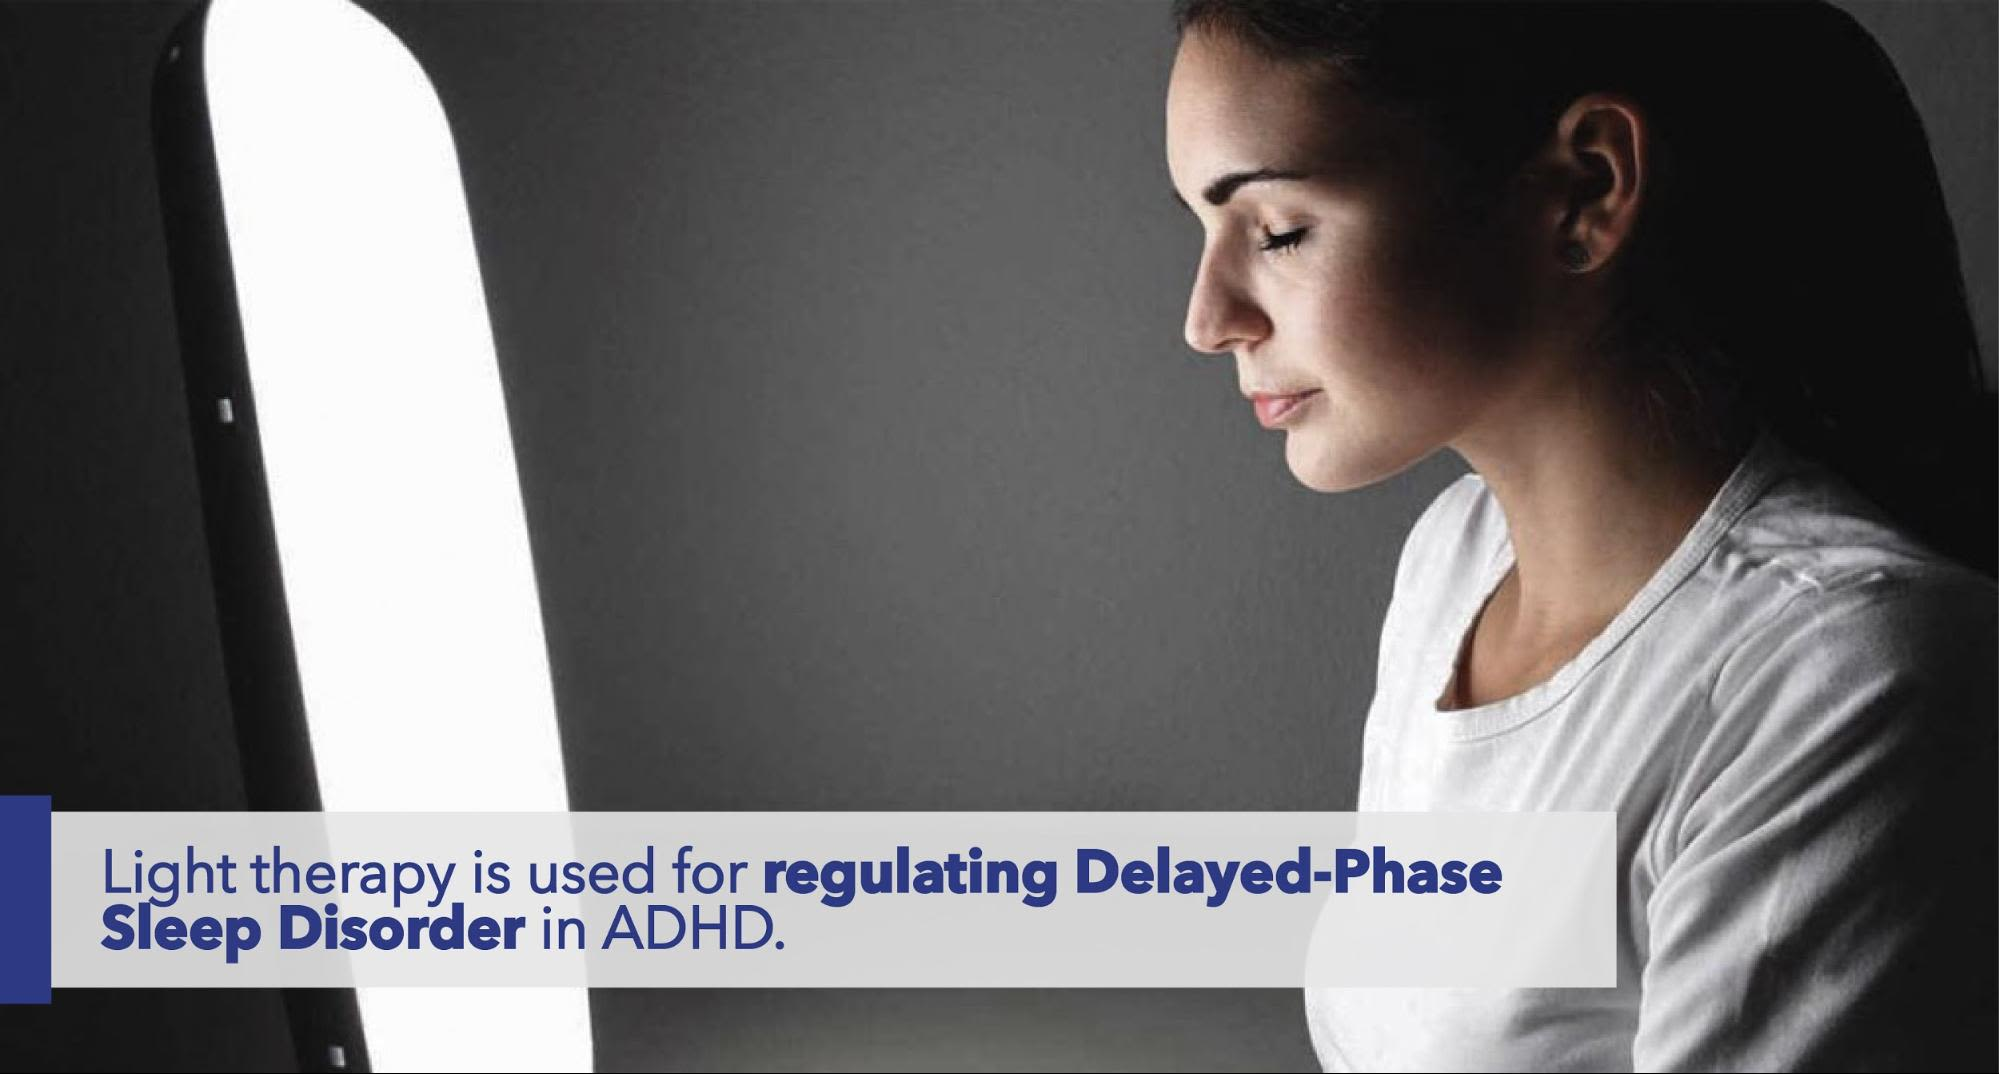 Light therapy is used for regulating Delayed-Phase Sleep Disorder in ADHD.